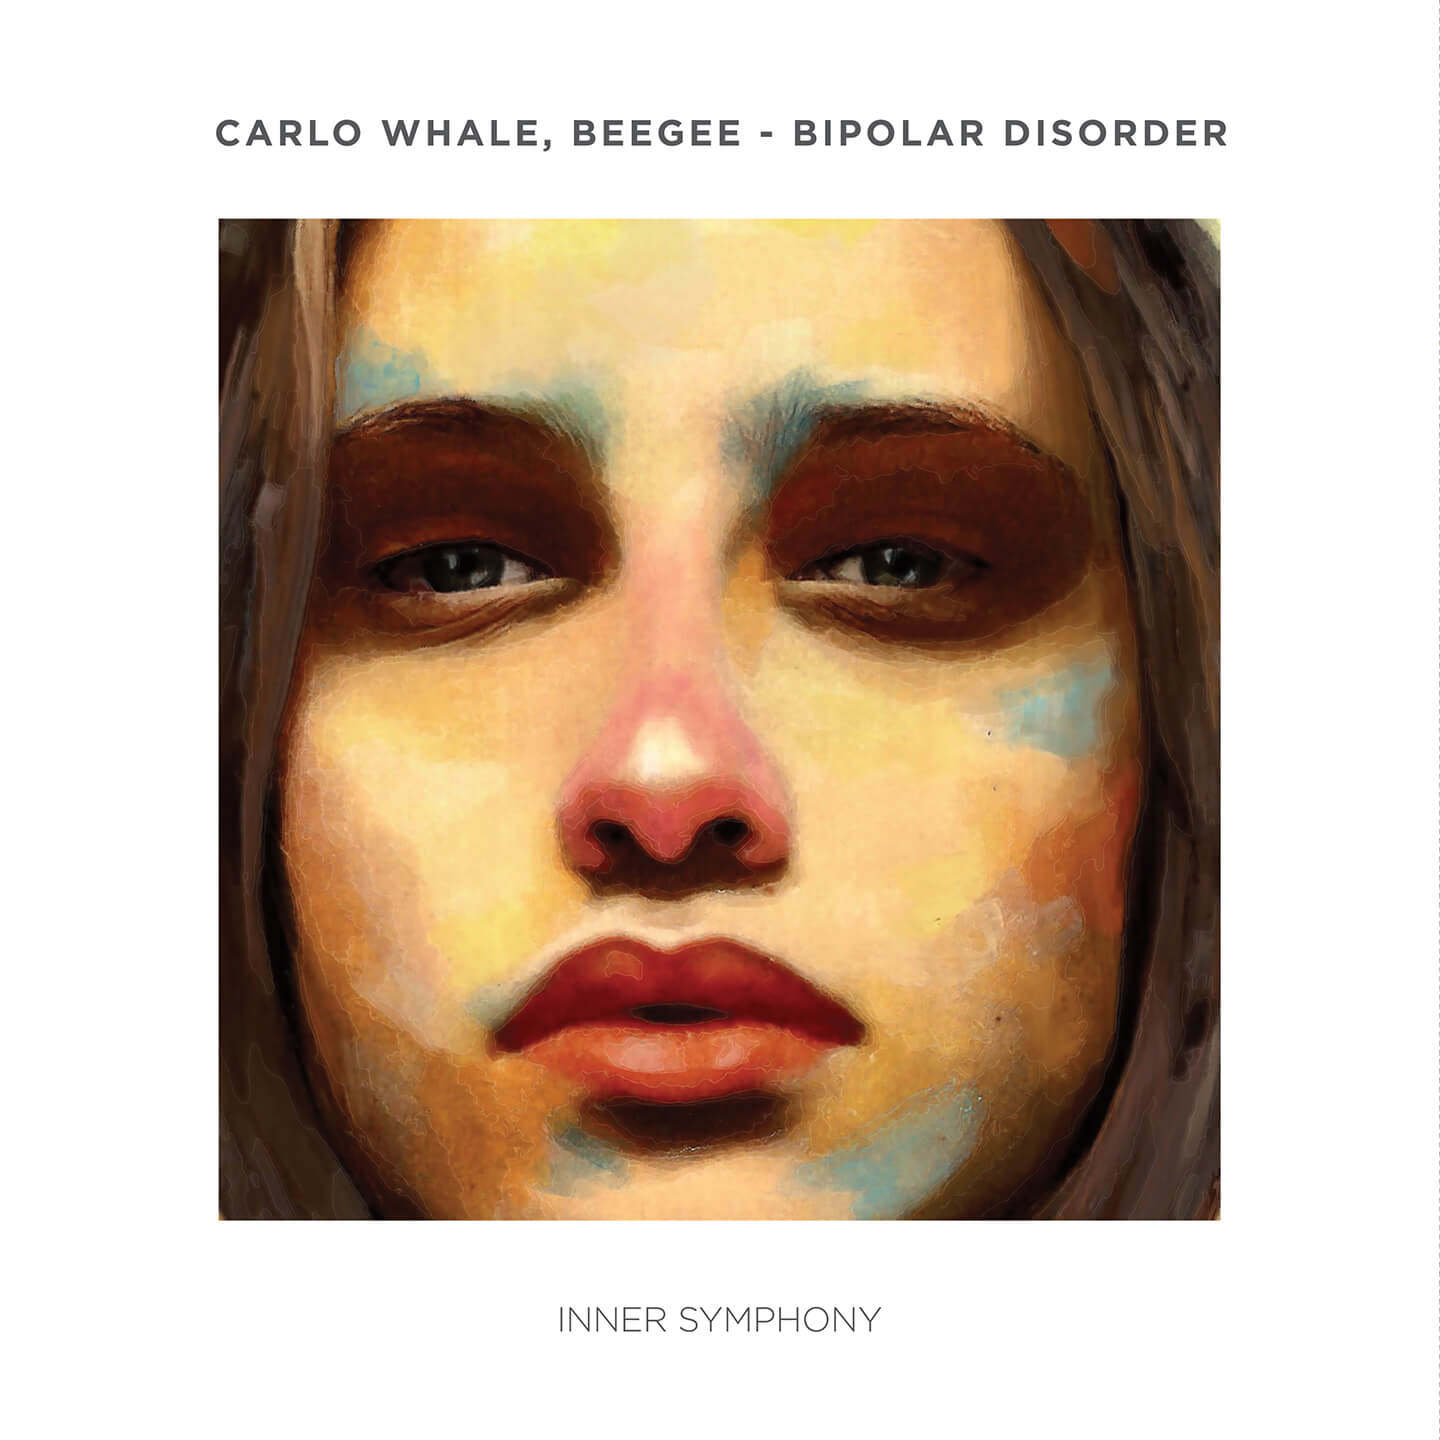 IS020 Carlo Whale BeeGee Bipolar Disorder - Inner Symphony